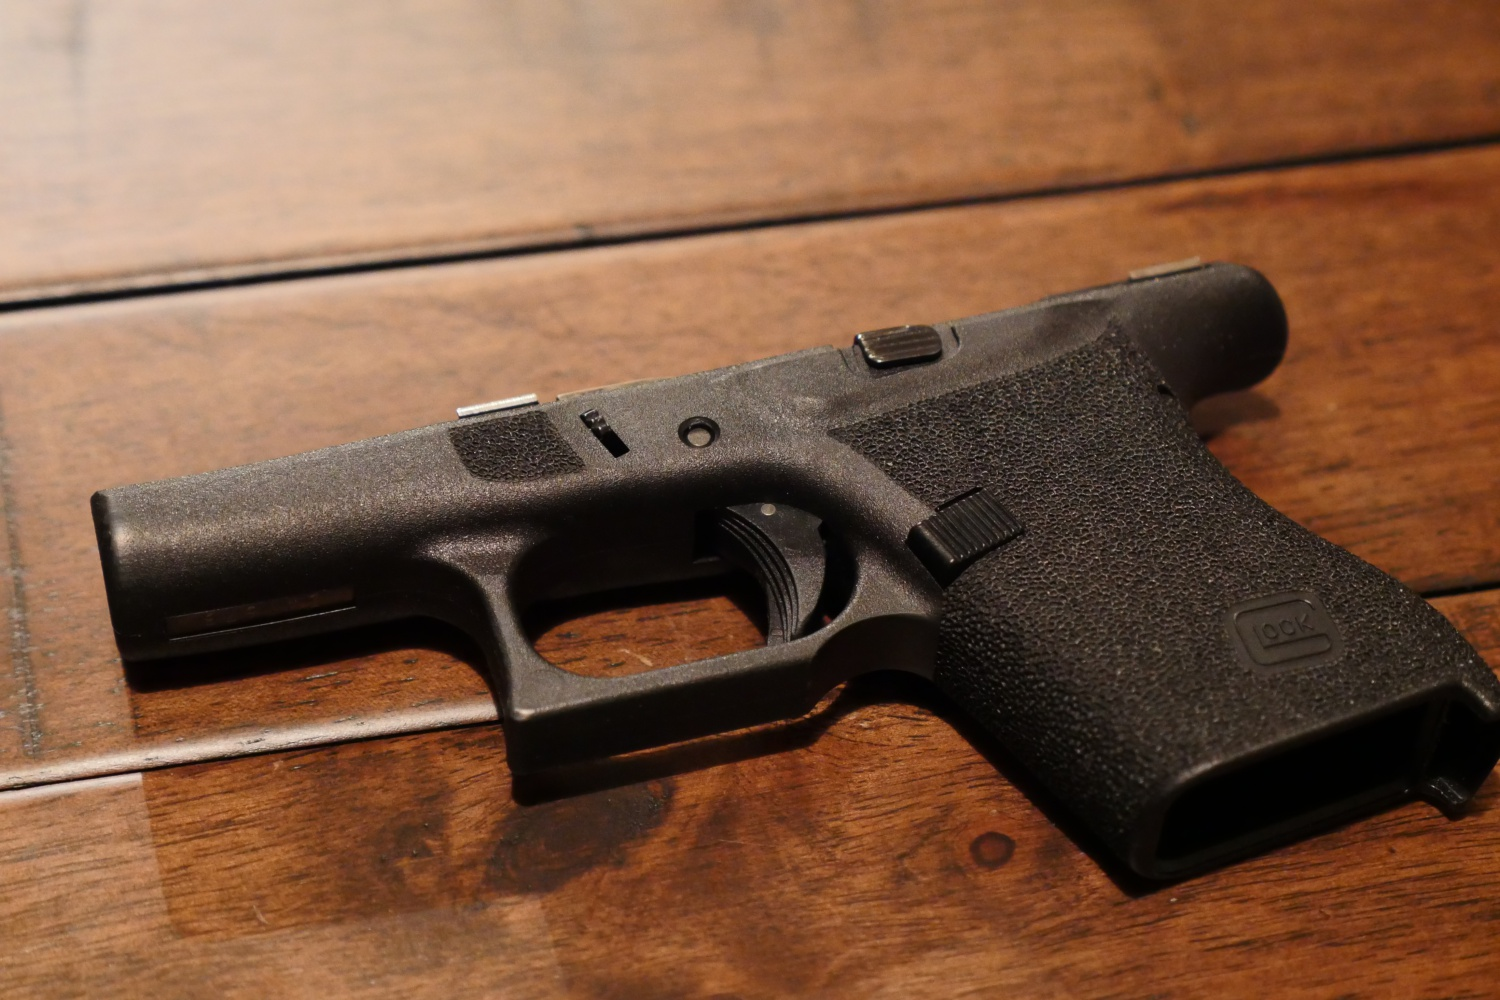 Review: Vickers Tactical Mag Catch And Slide Stop For the Glock 43